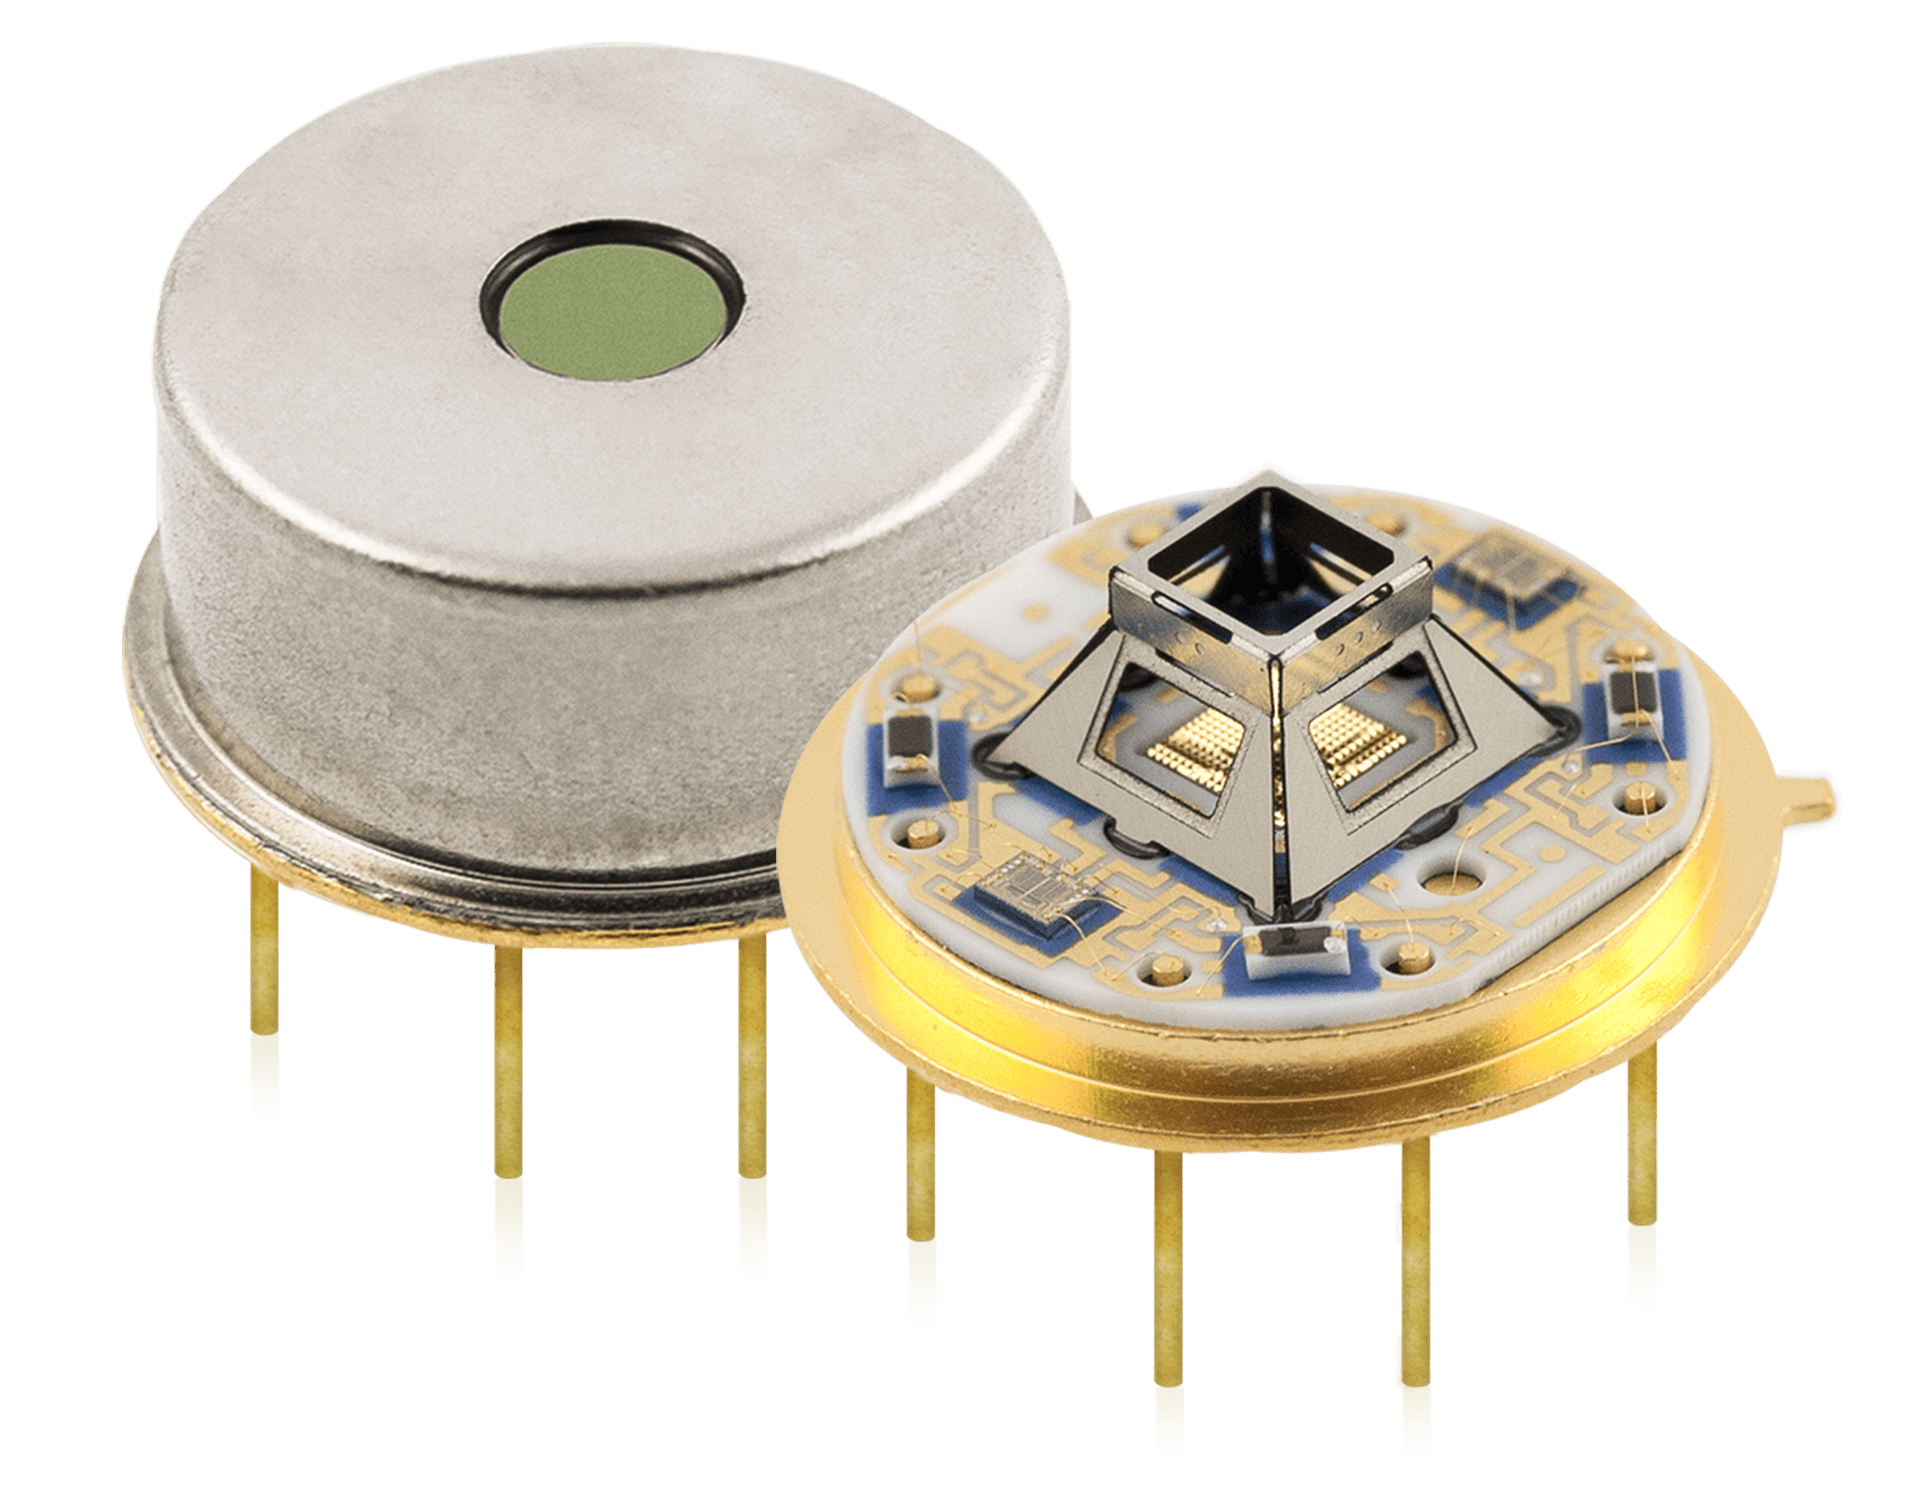 PYROMID® multi channel detectors from InfraTec